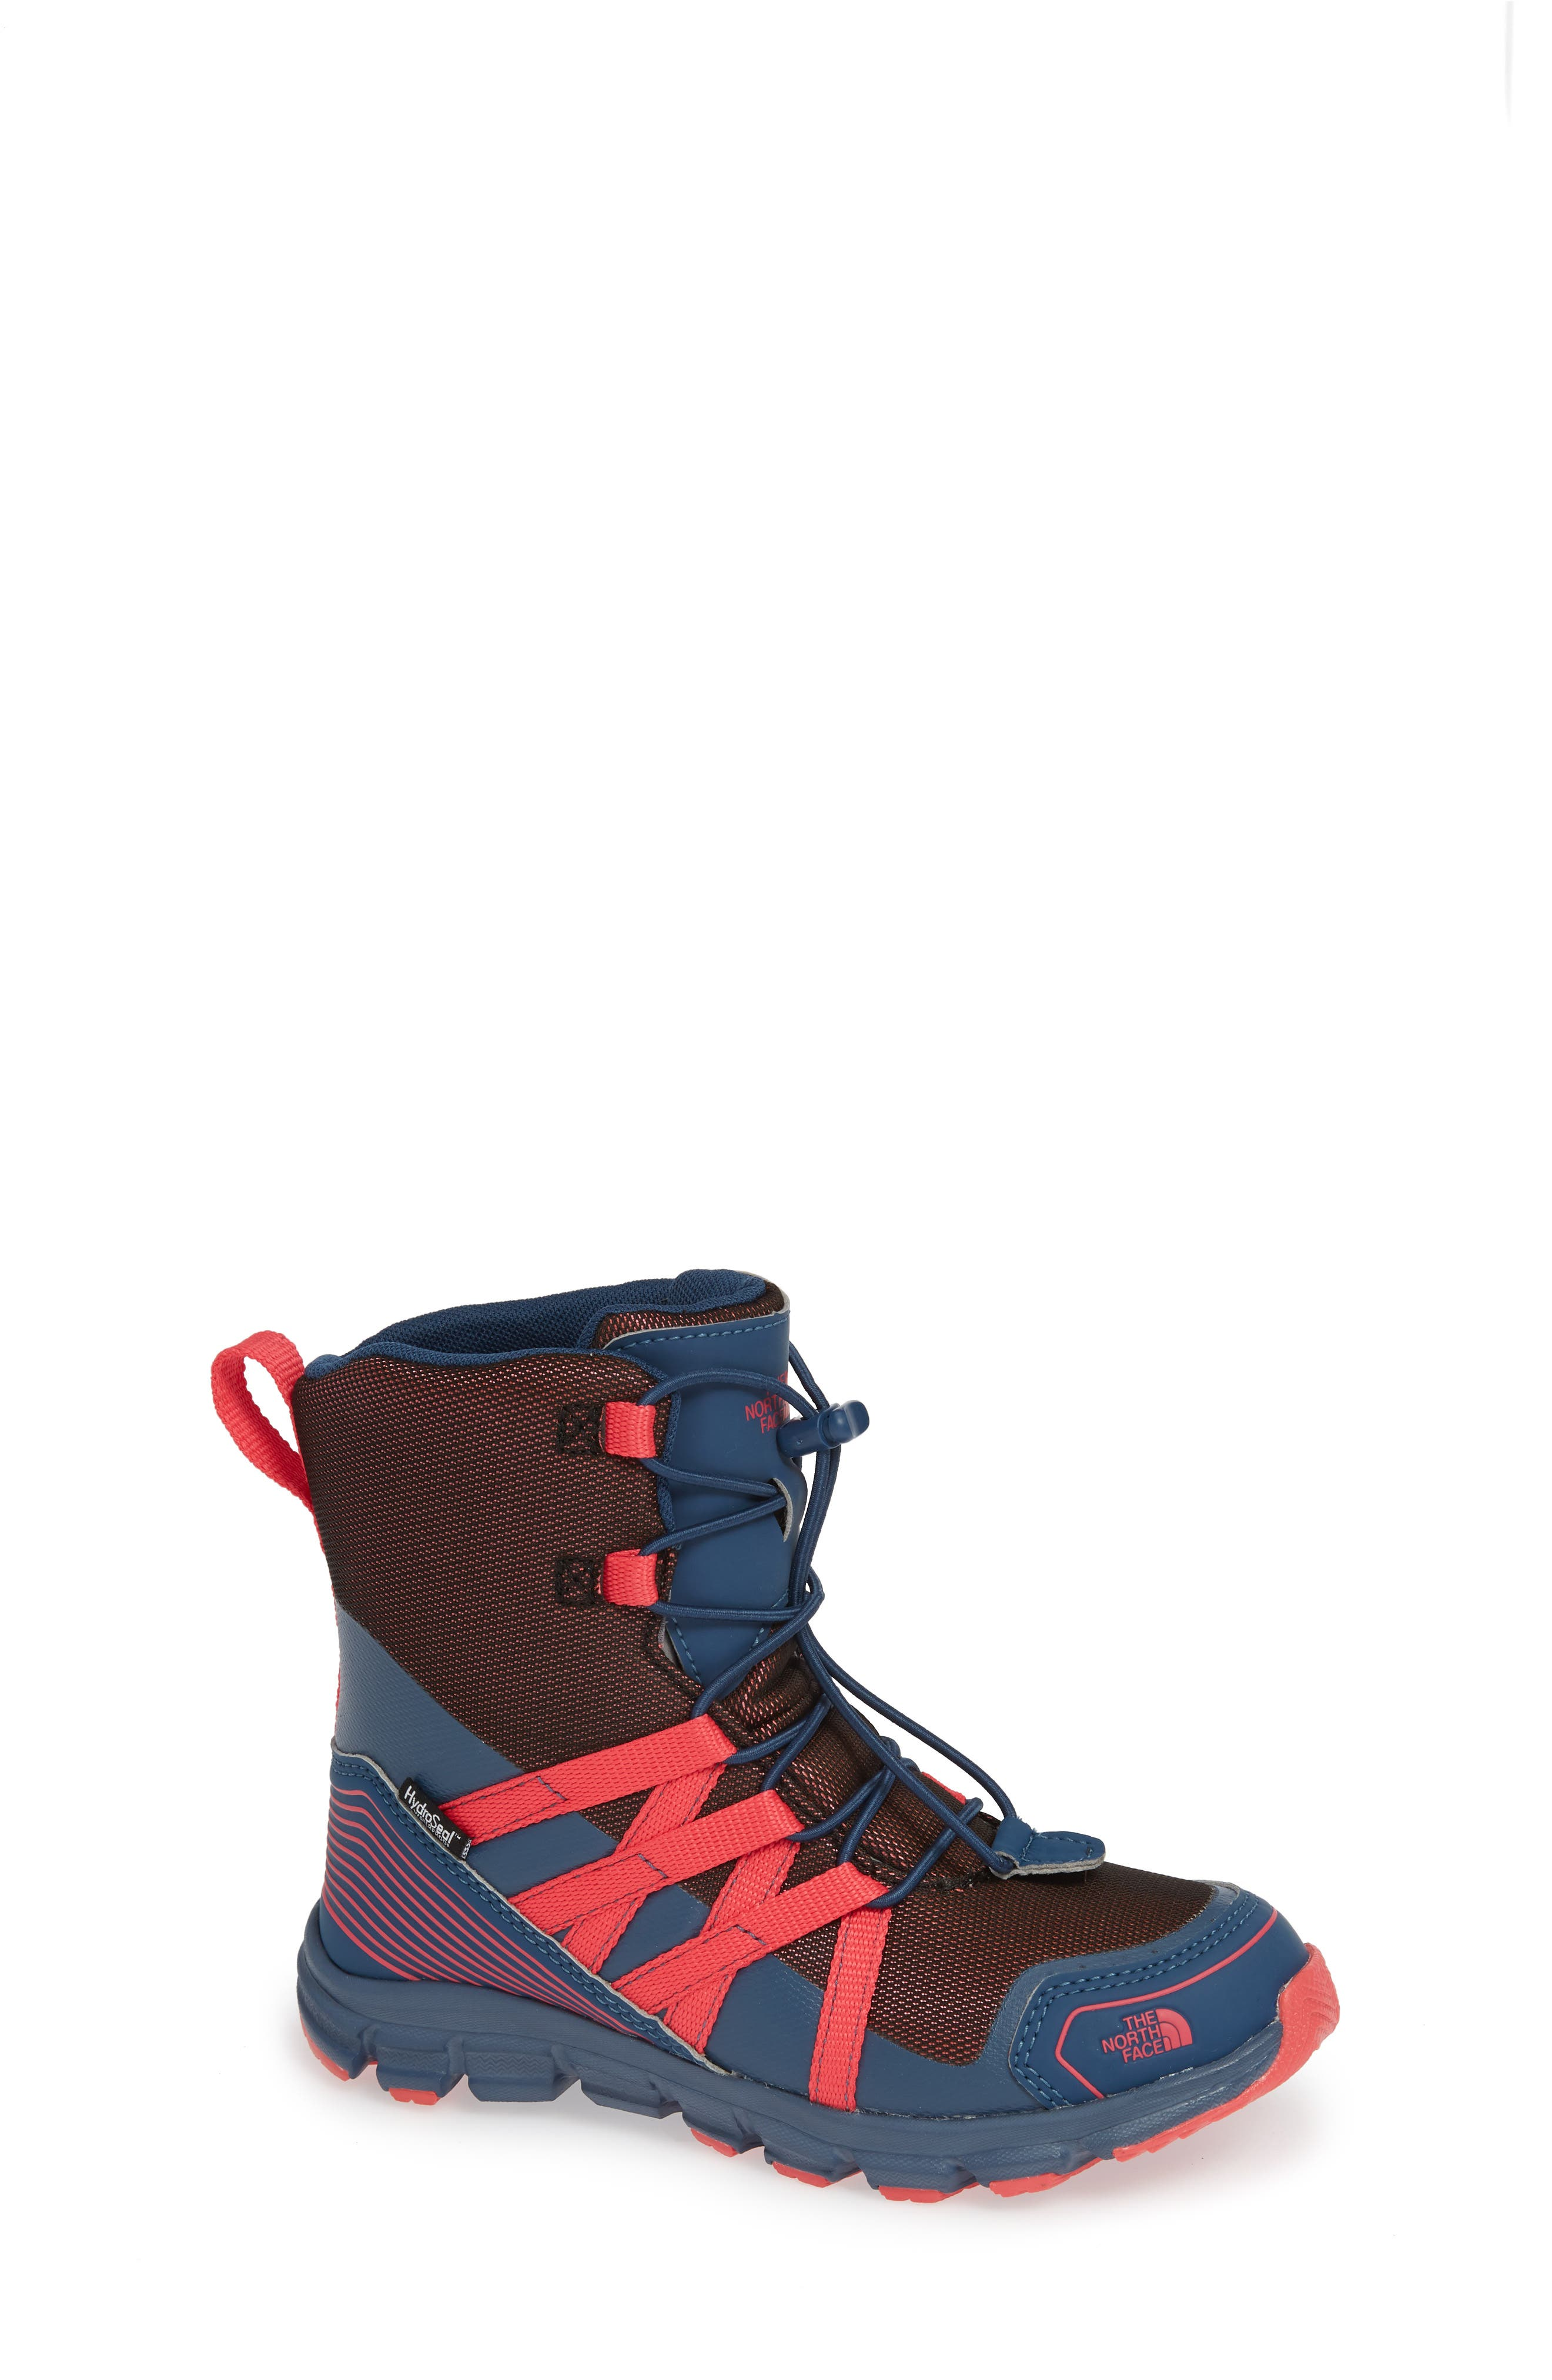 Junior Winter Sneaker Waterproof Insulated Boot,                             Main thumbnail 1, color,                             BLUE WING TEAL/ ATOMIC PINK